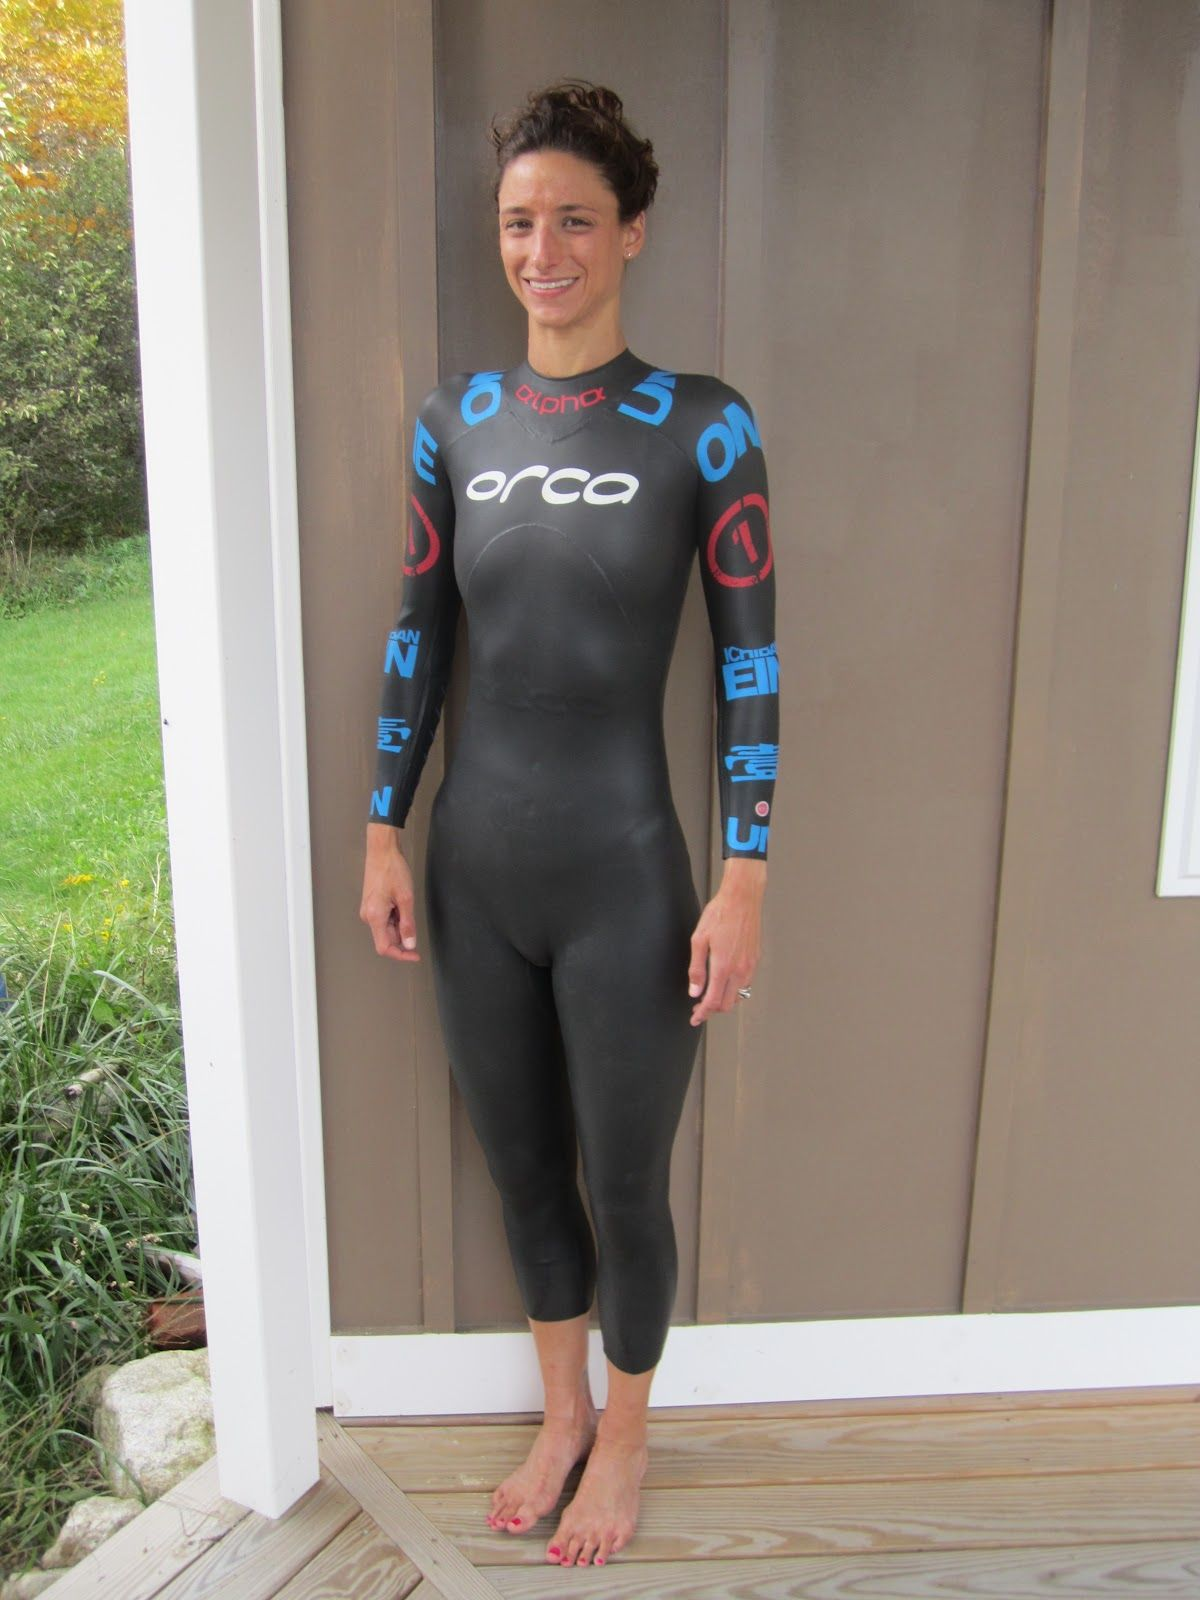 07035a9673d6 Most triathletes rave about wetsuits because, well, wetsuits make them swim  fast and look hot. I, as I have learned through tryi.